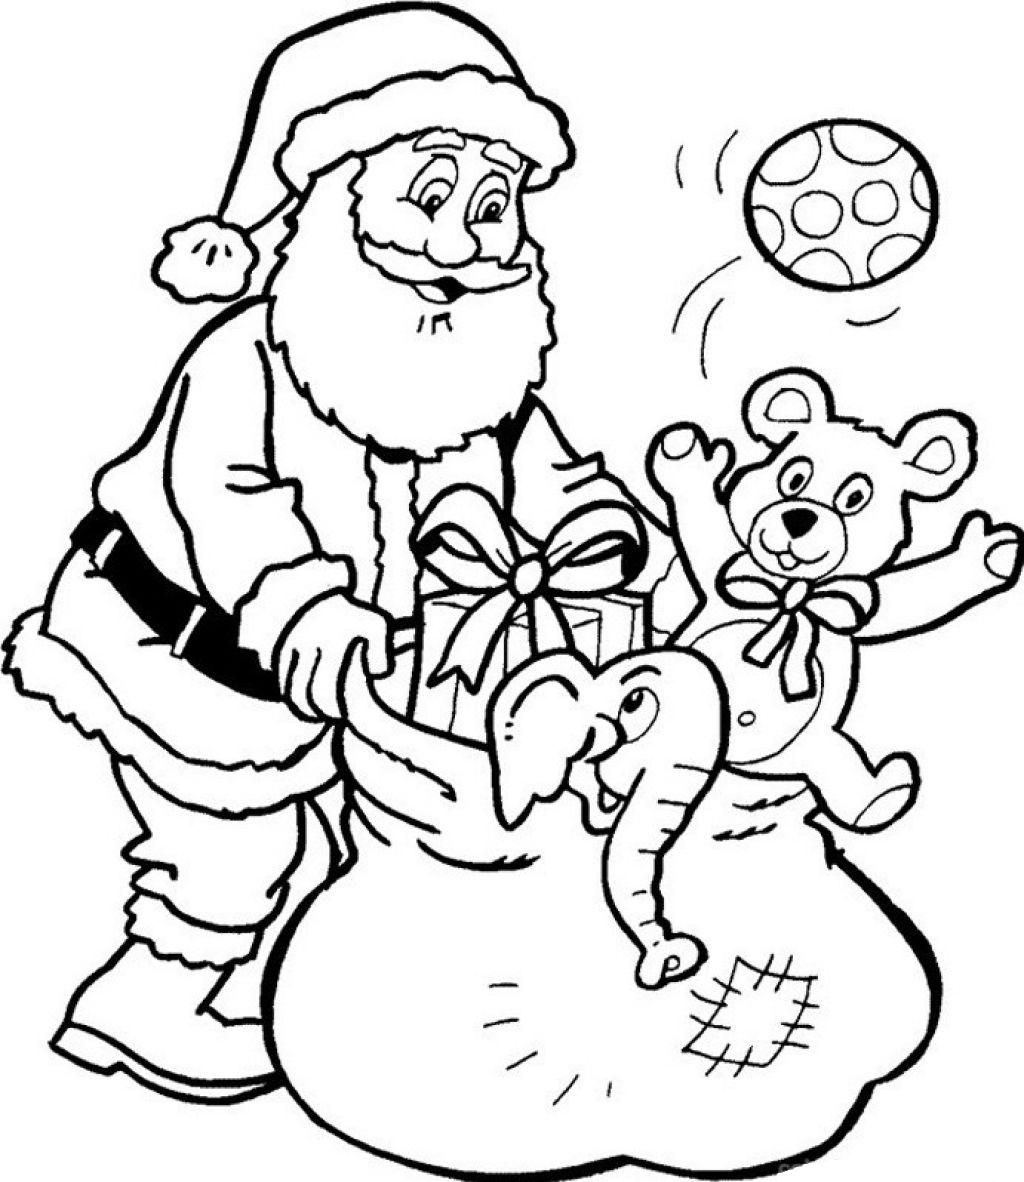 Santa Claus Coloring Games Free Online With And Presents Printable Pages Christmas Some